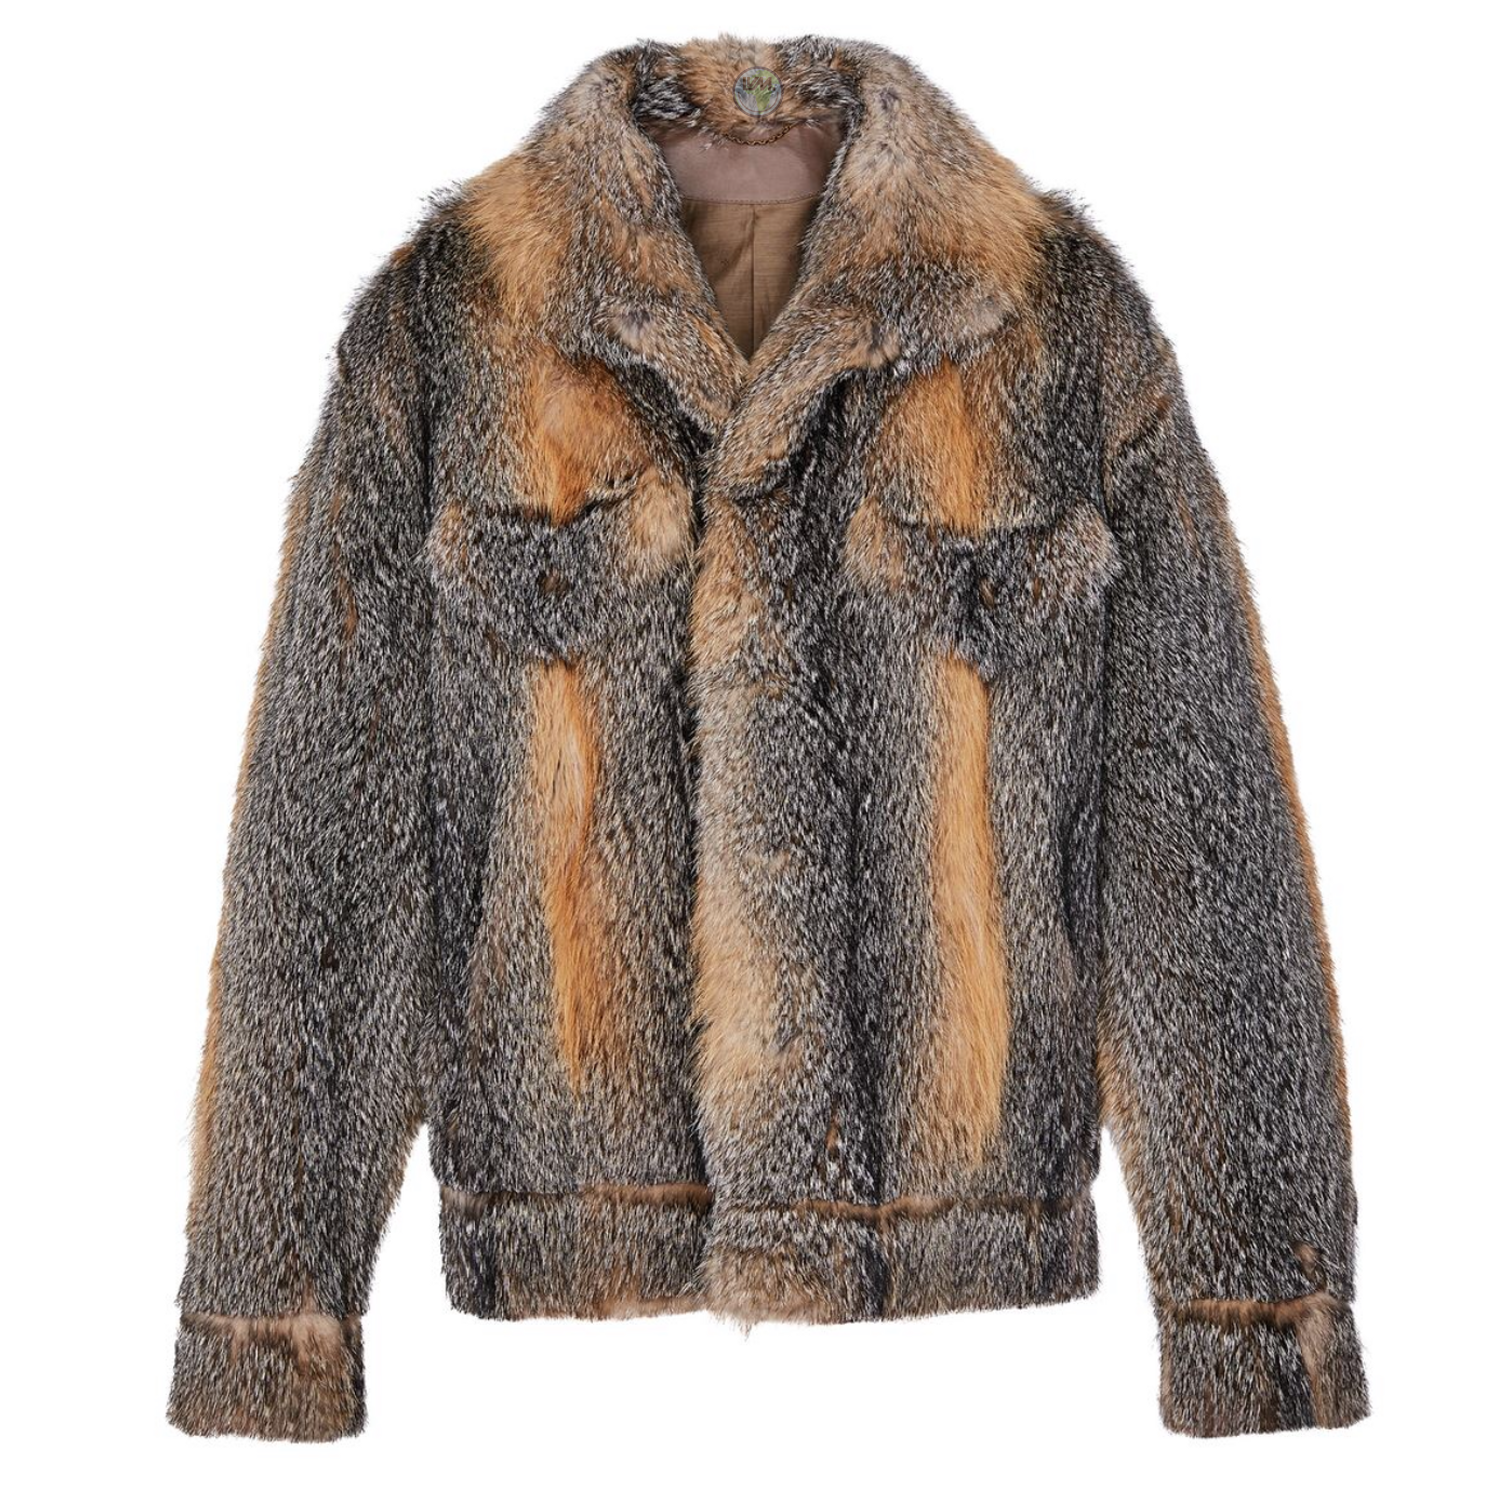 FOX FUR JACKET - €9900 $13,2001A5CZ4GRIS